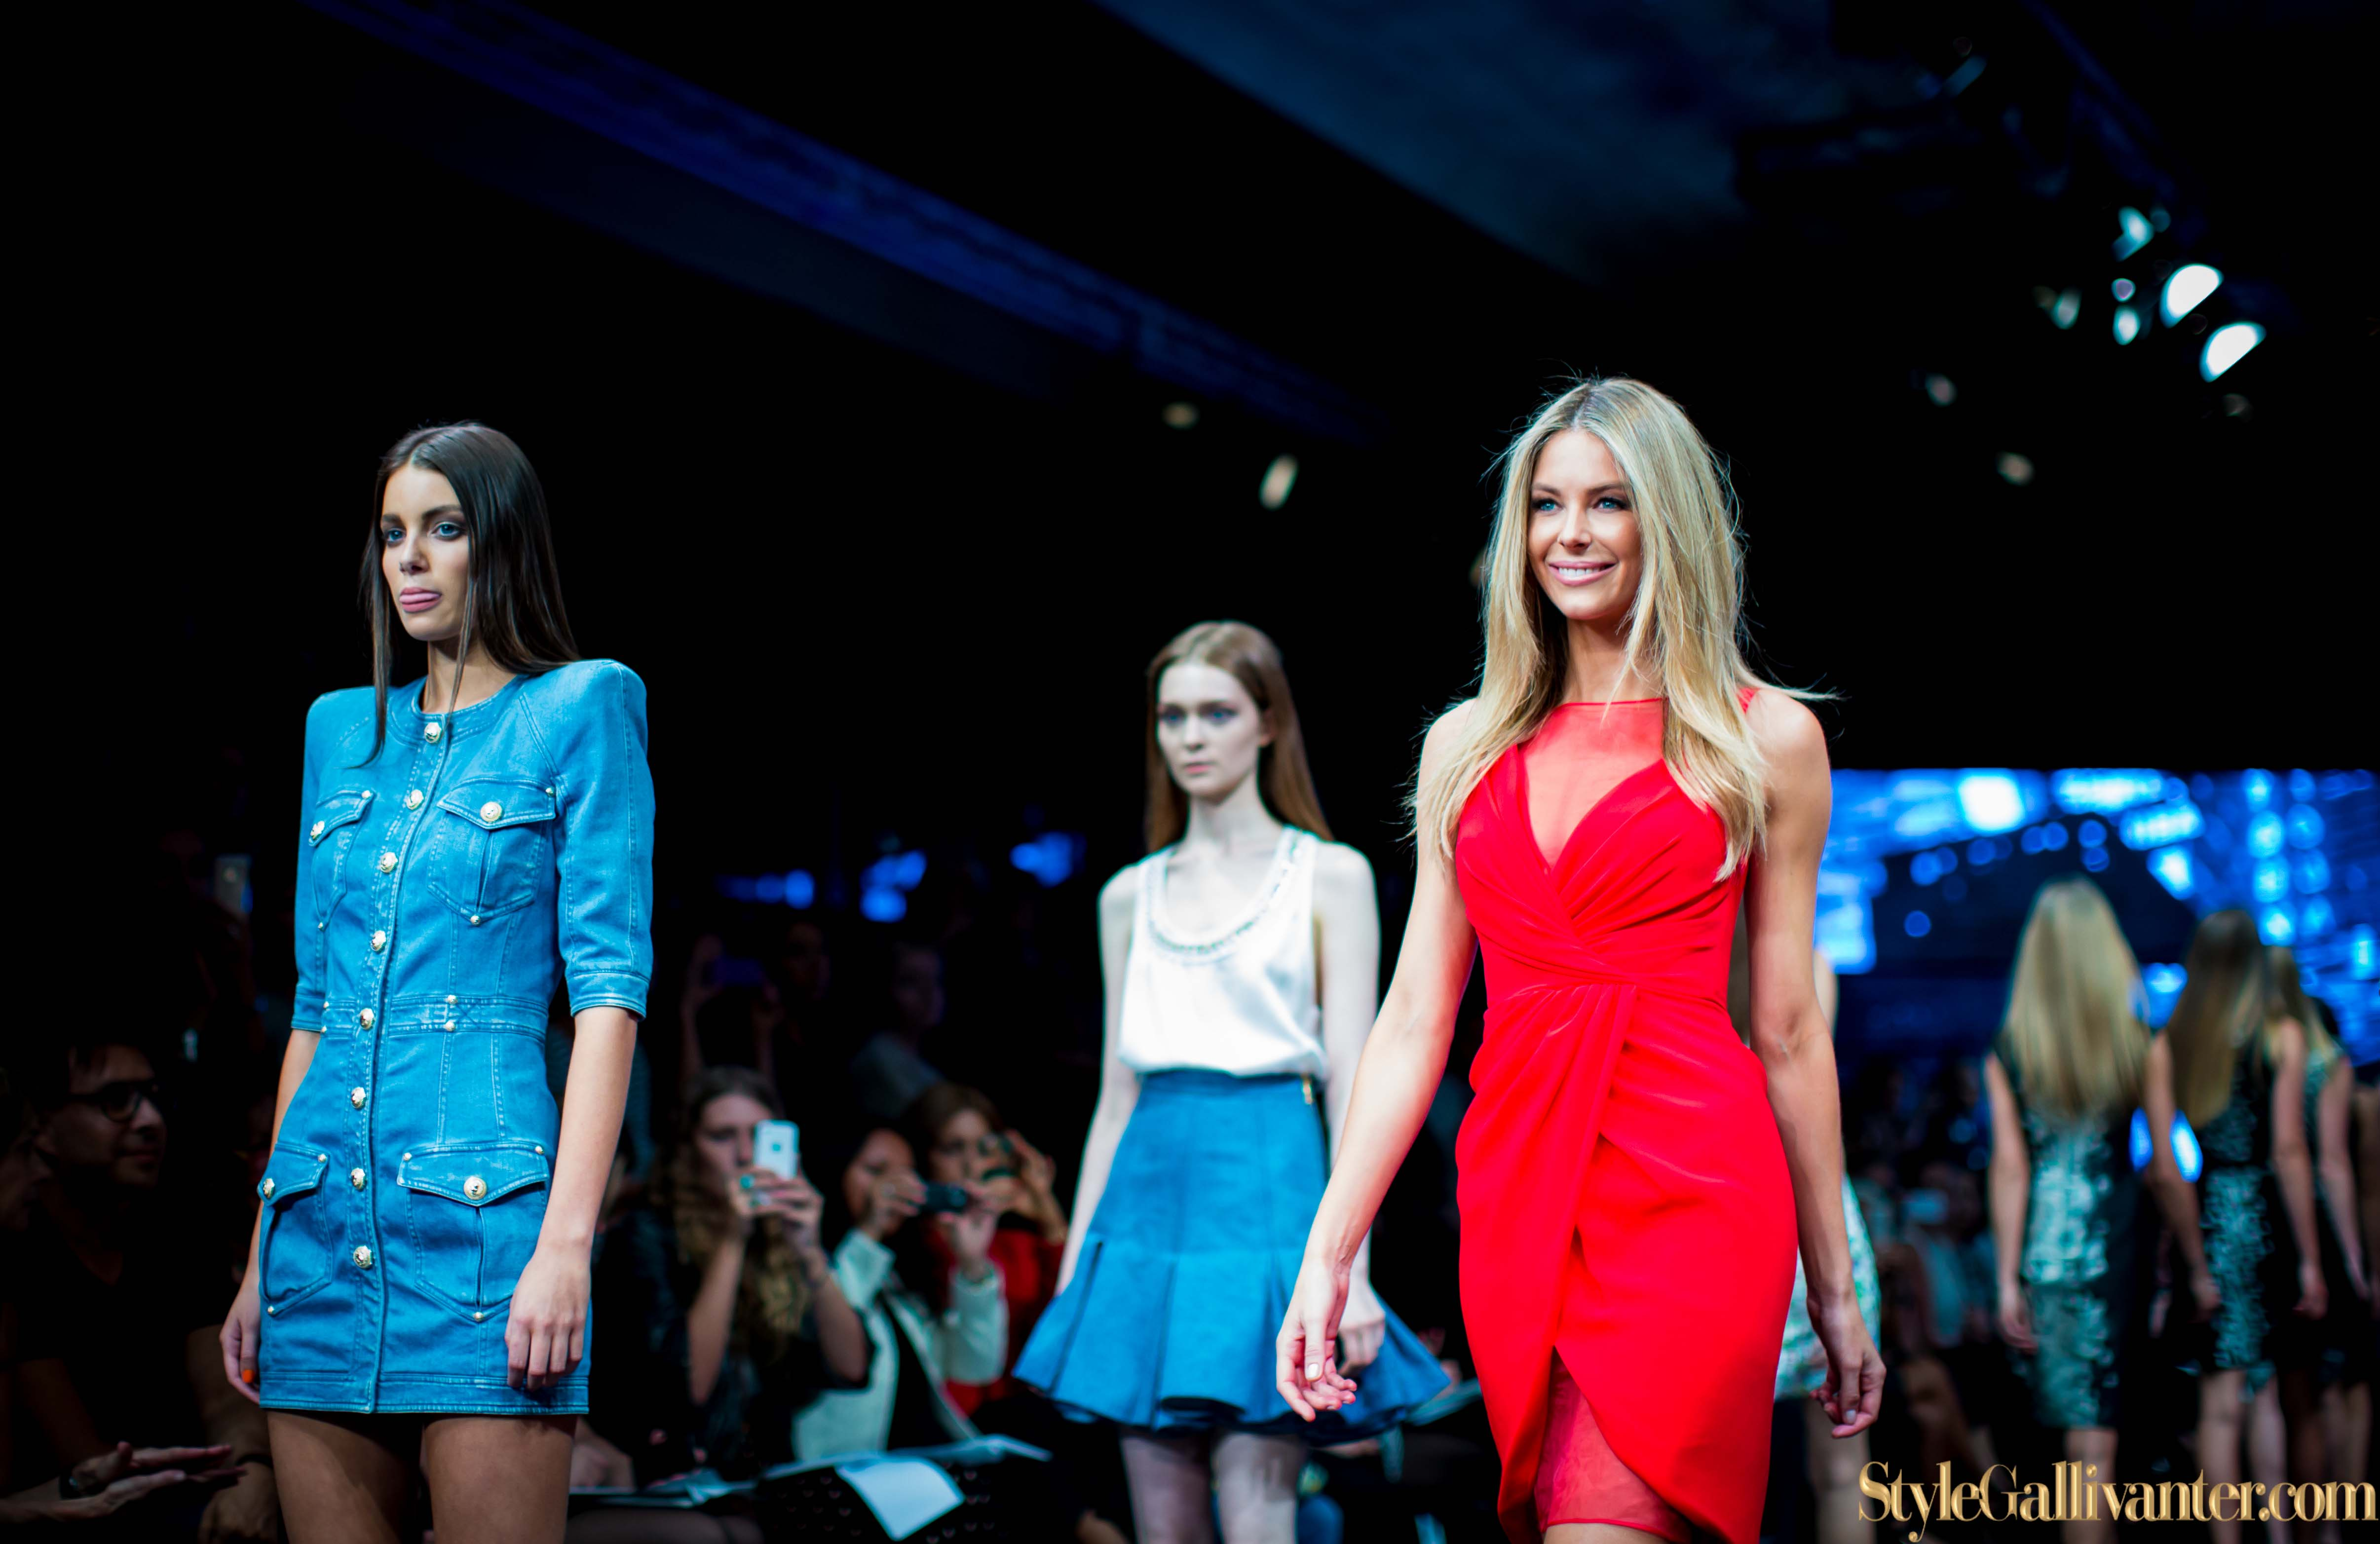 myerAW2014_MYERFASHIONLAUNCH_MYER-FASHION-LAUNCH_JENNIFER-HAWKINS-MYER-2014_MYER-AUTUM-WINTER-2014_MYER-AW-2014_KATE-PECK-13